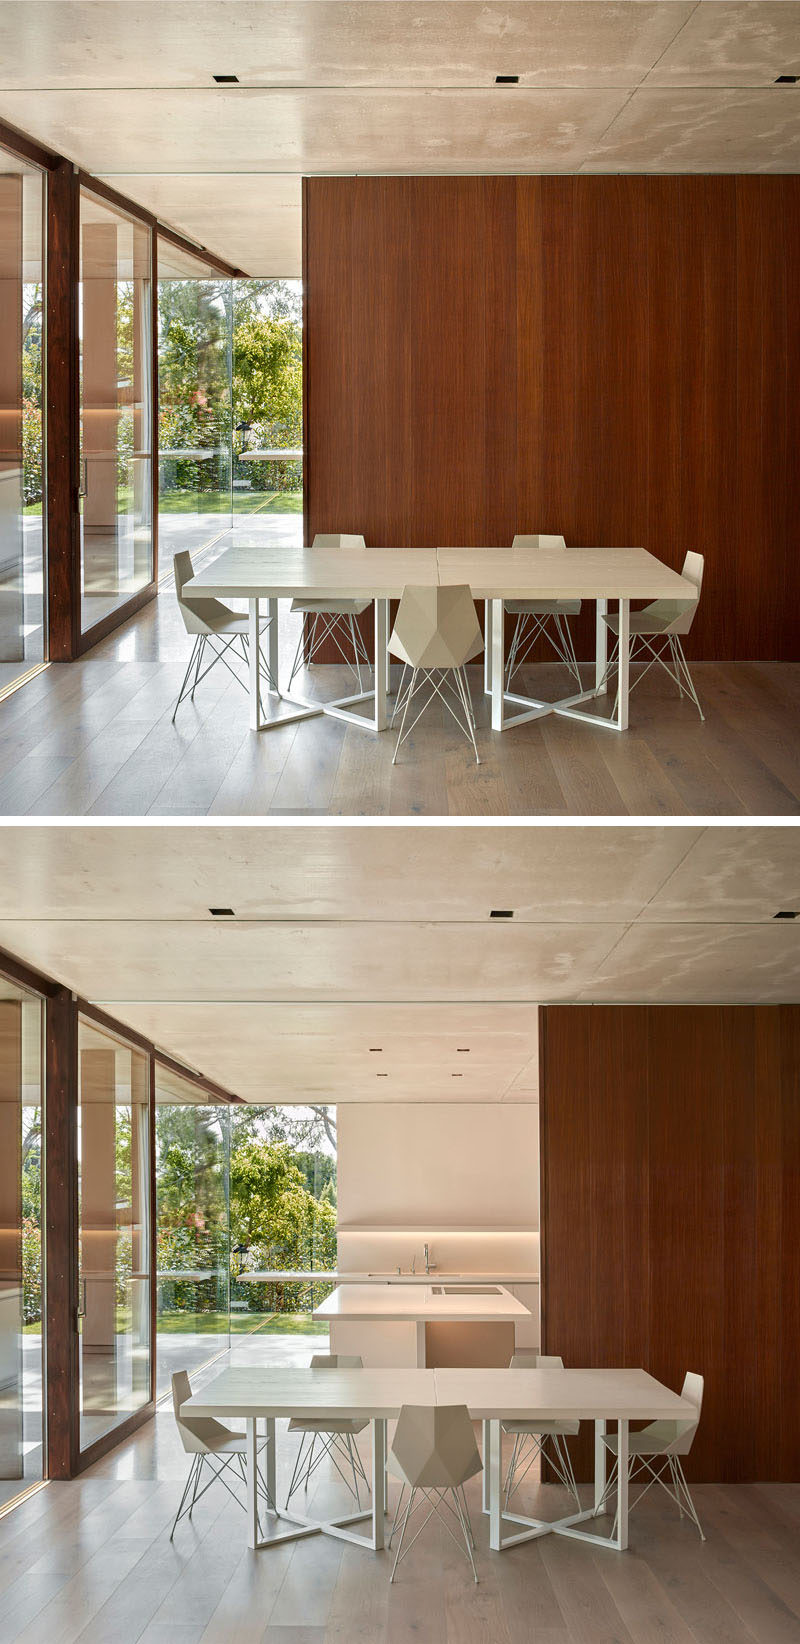 This dining room is minimal in its design with white table and chairs, while a wood wall slides open to reveal the kitchen behind it.